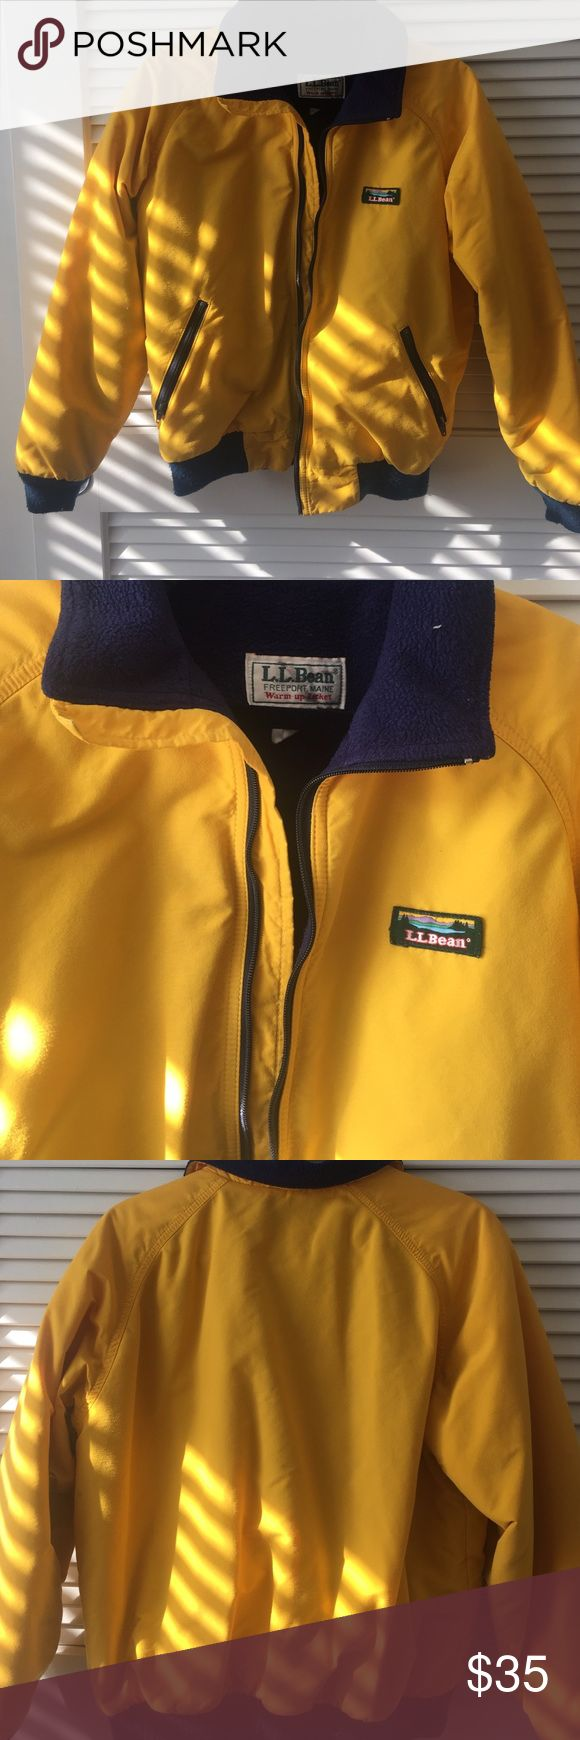 LL Bean Women's warm up bomber jacket LL Beans women's warm up bomber jacket, has warm fleece material inside. Has two pockets that zip up, navy blue and yellow colored. L.L. Bean Jackets & Coats Puffers